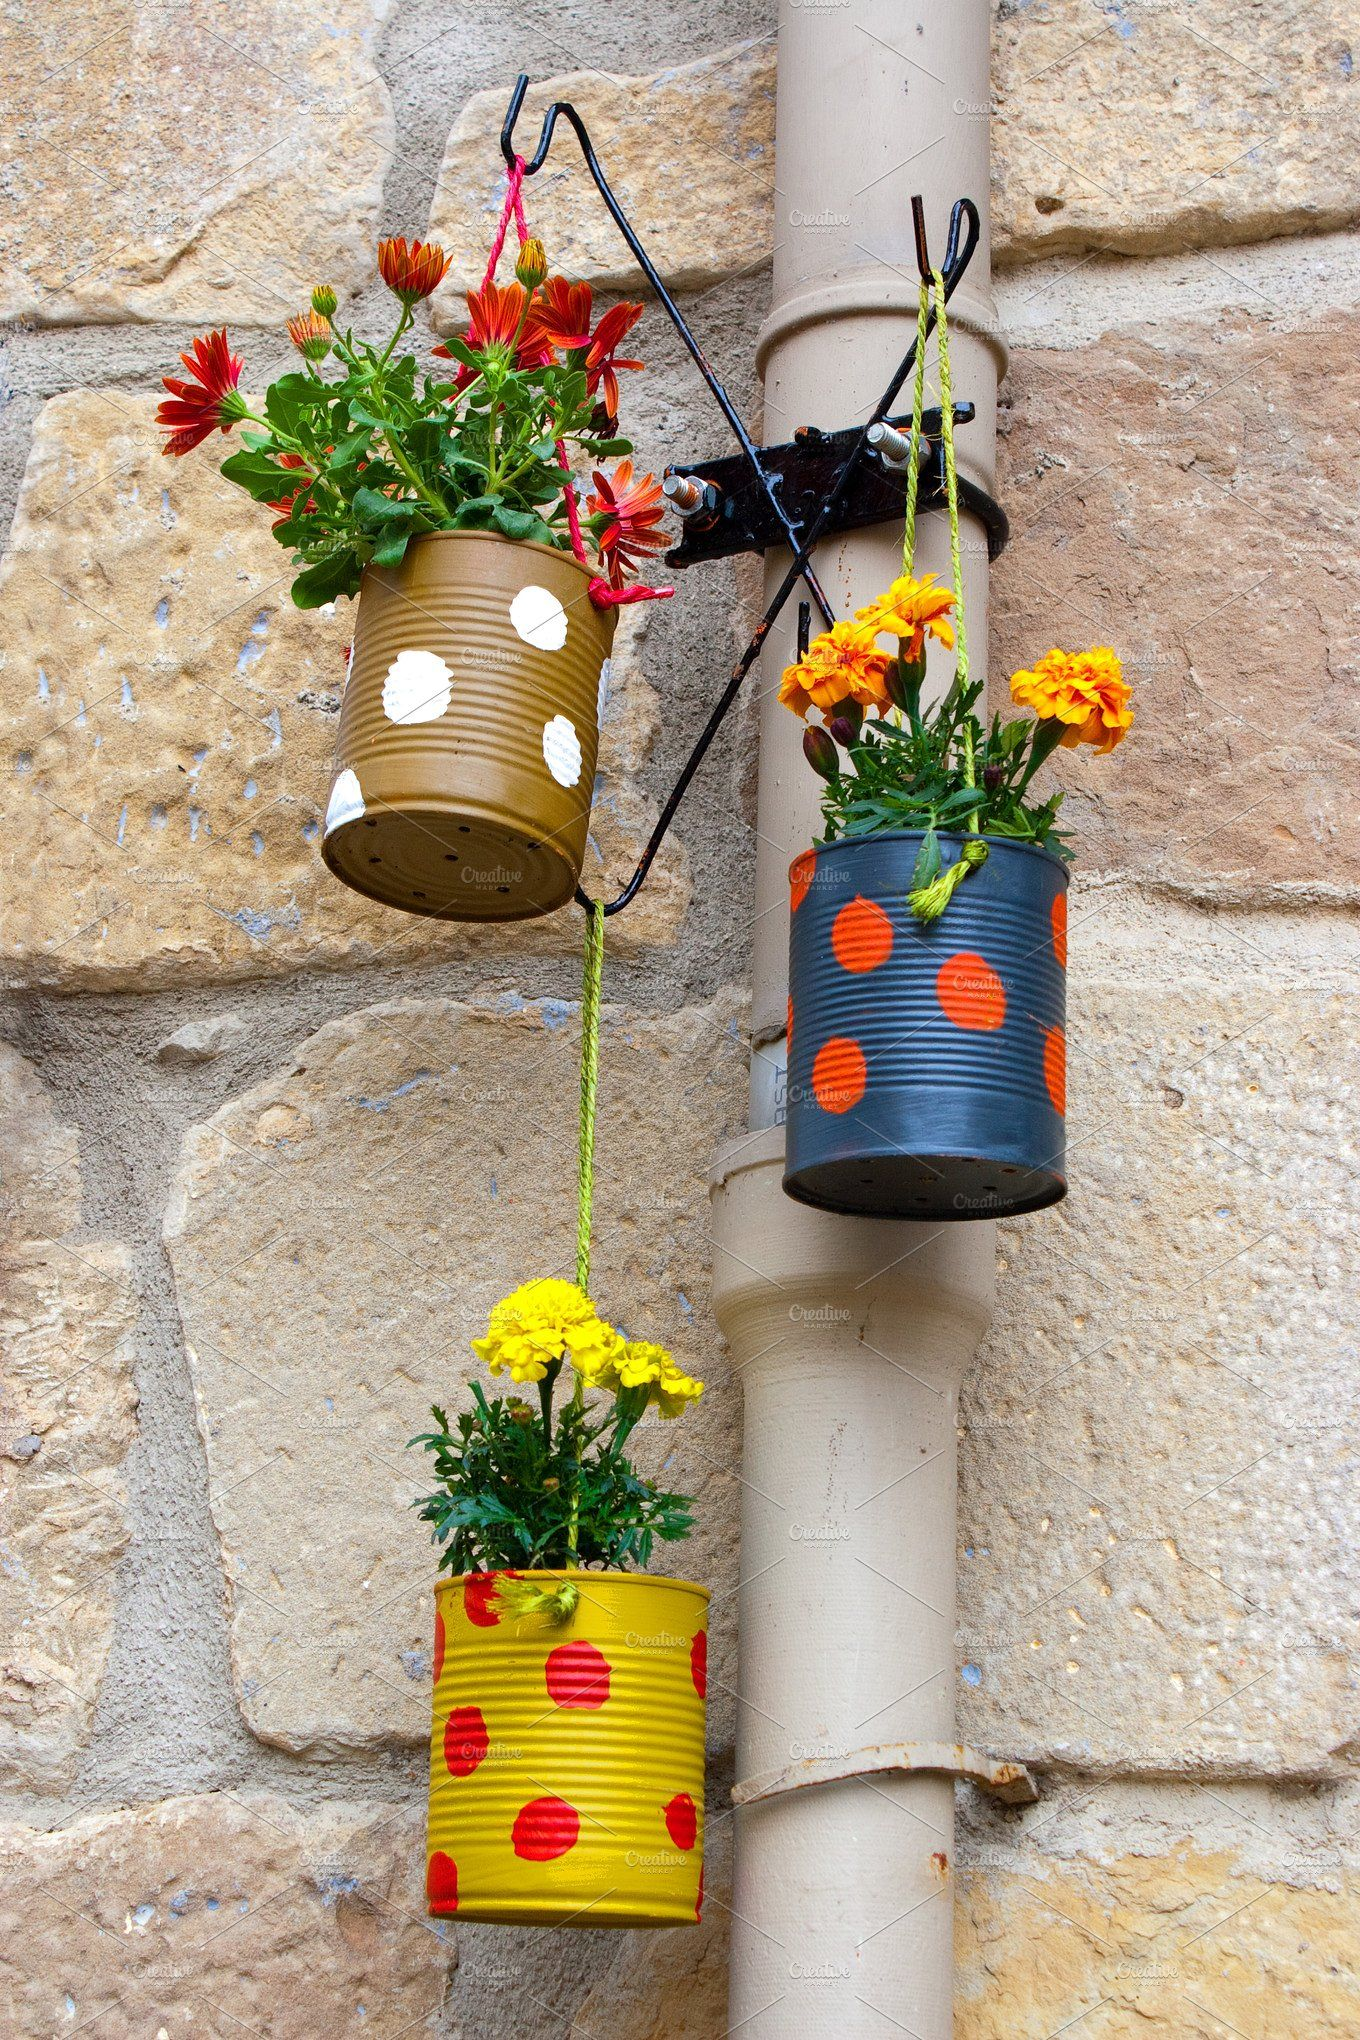 Hanging flowerpots made with cans in the street.